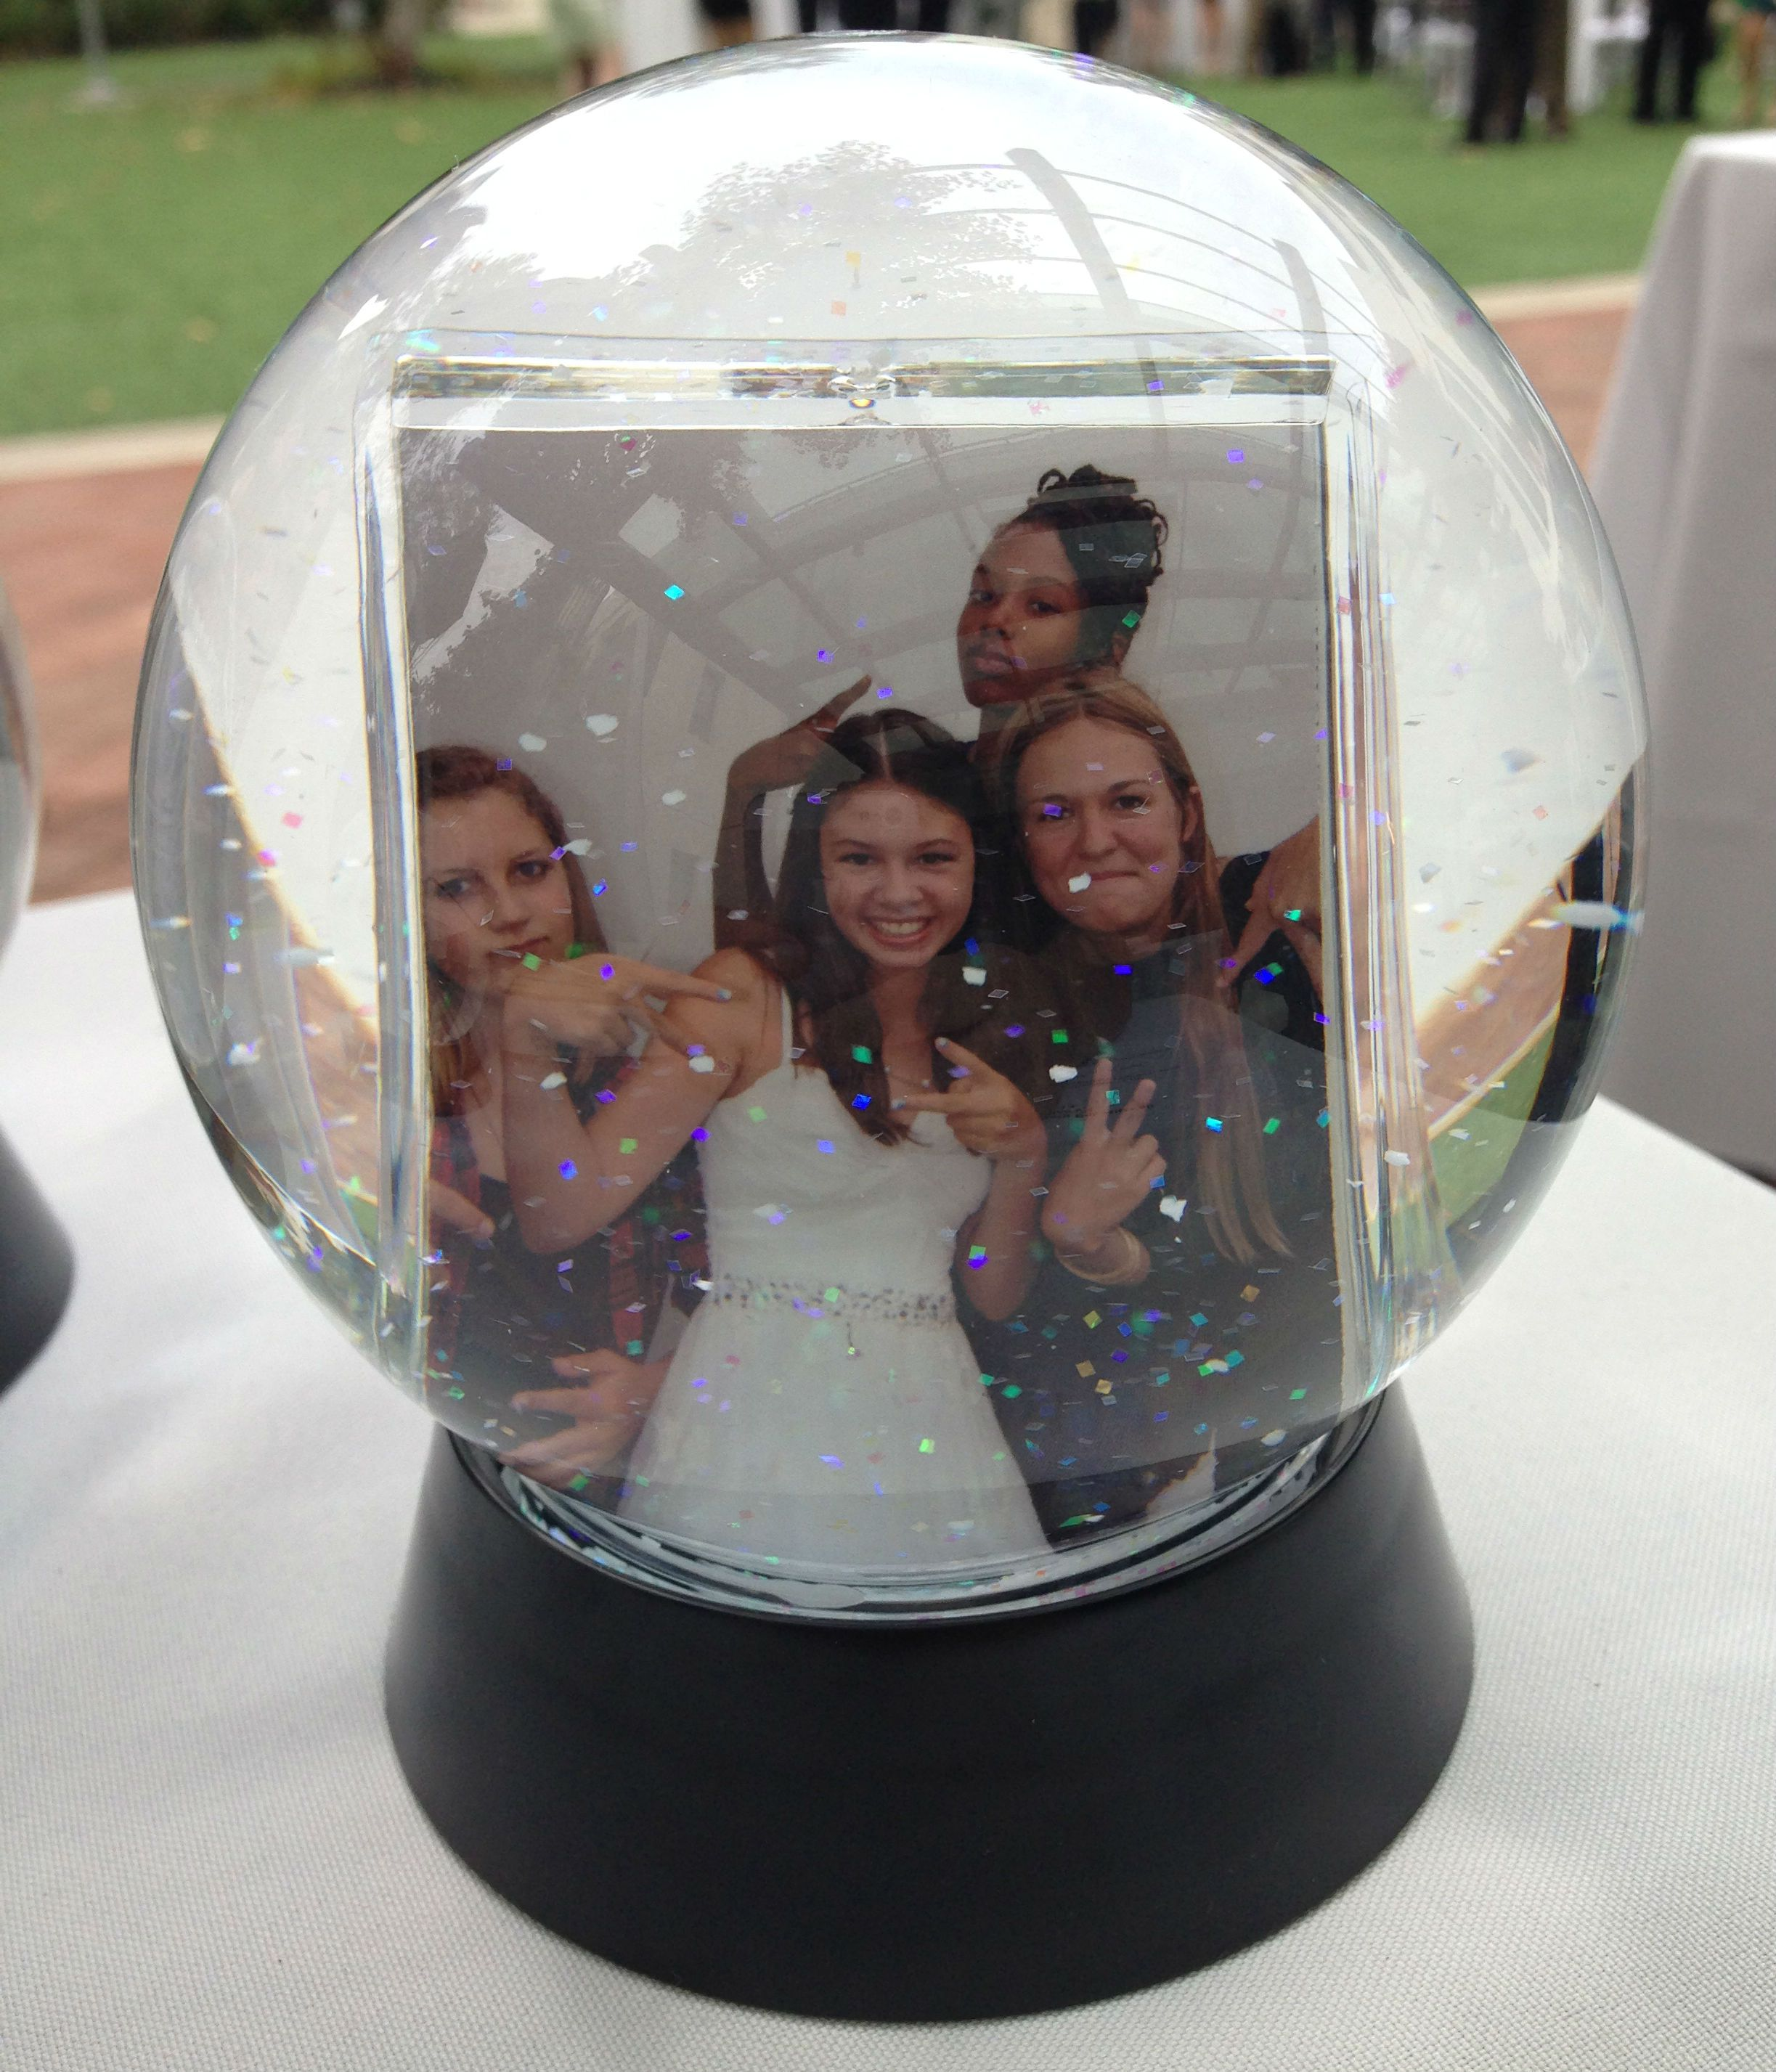 Photo Snow Globes Fun 4 Events Fun 4 Events The Right Place For